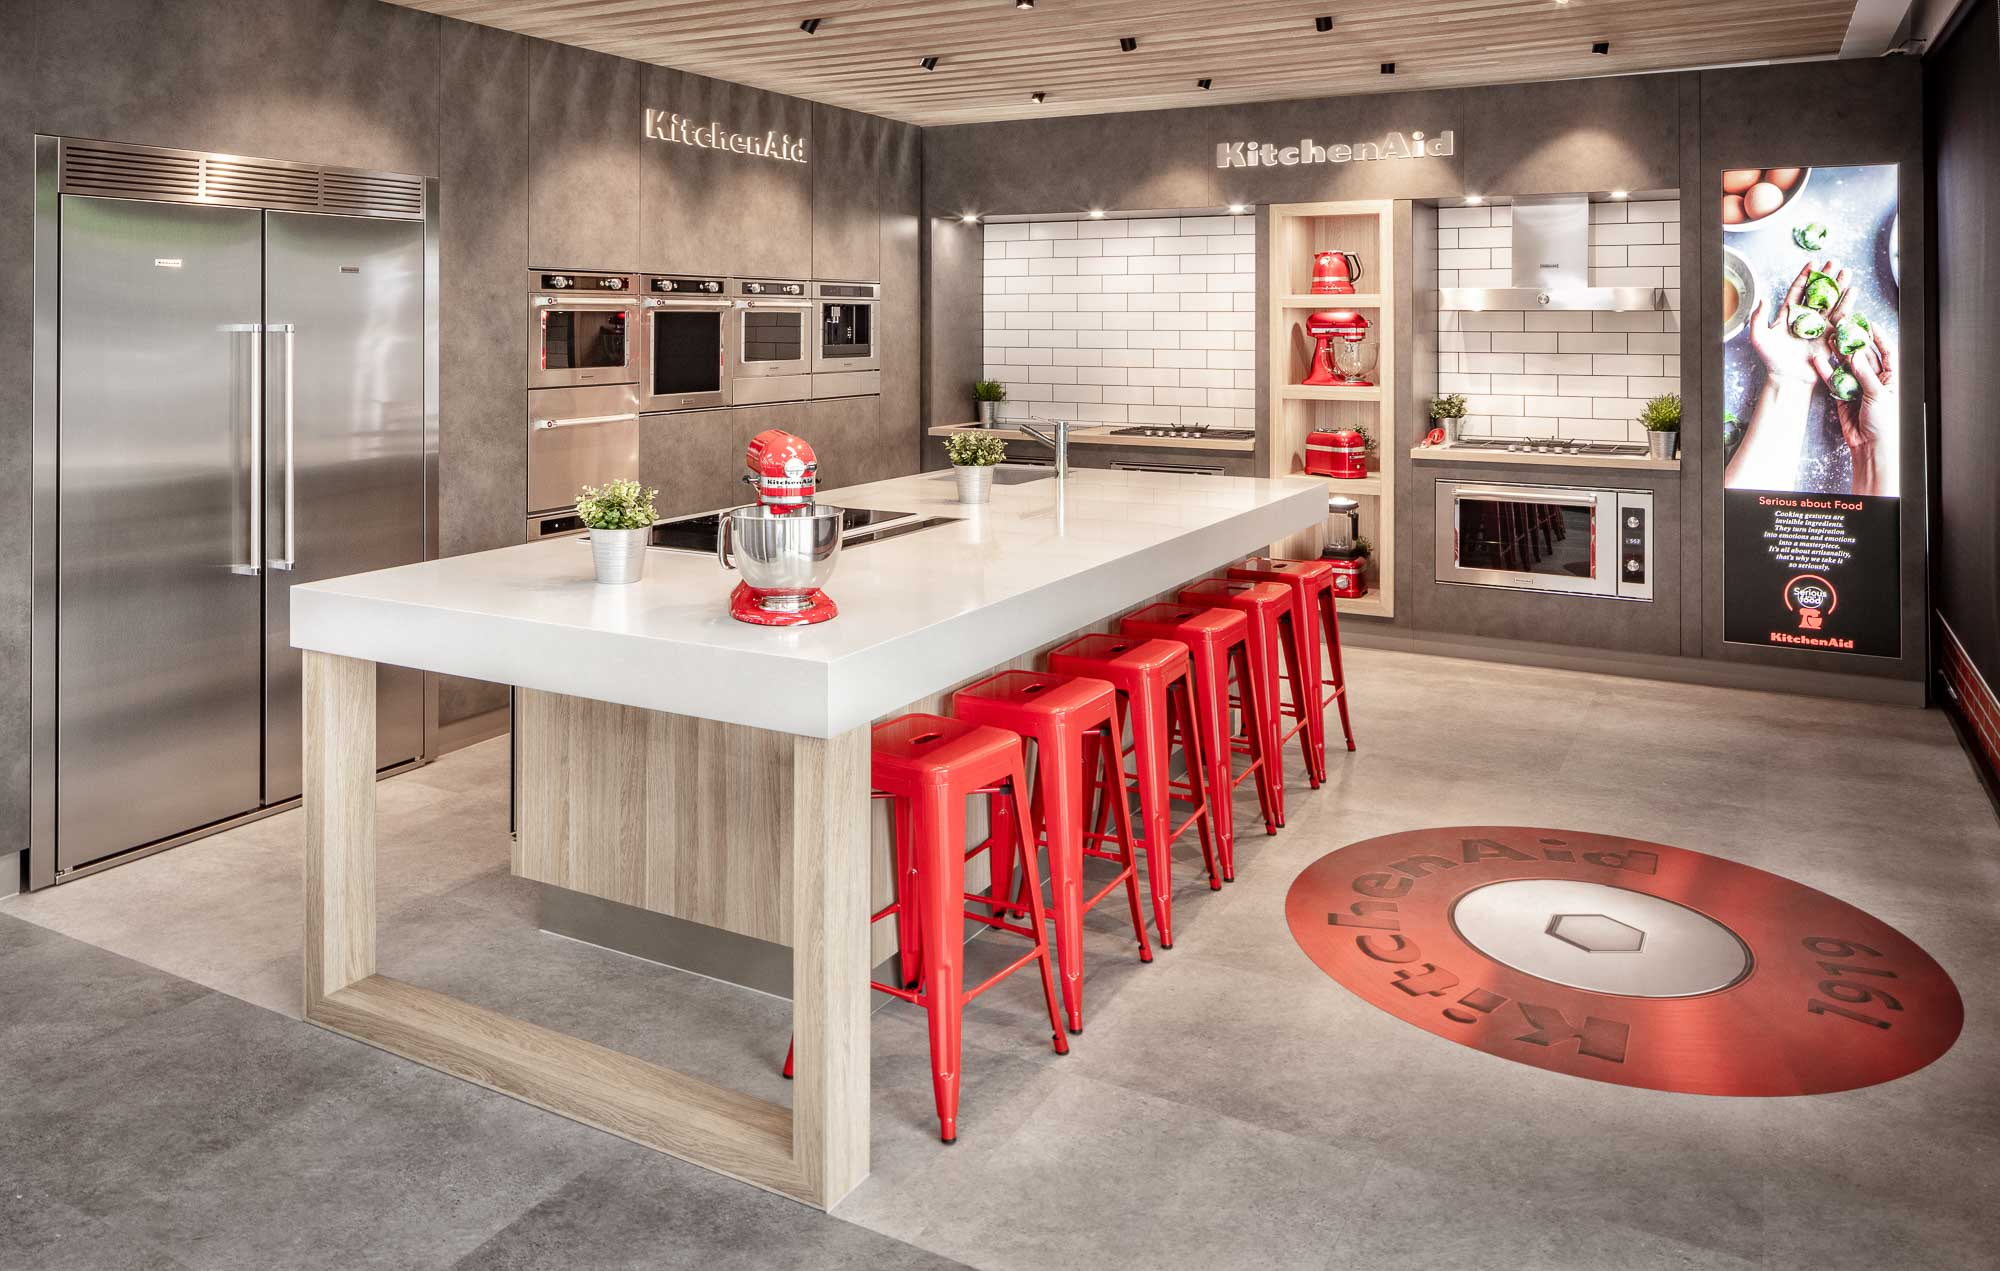 Kitchenaid display Showroom - Advertising photography